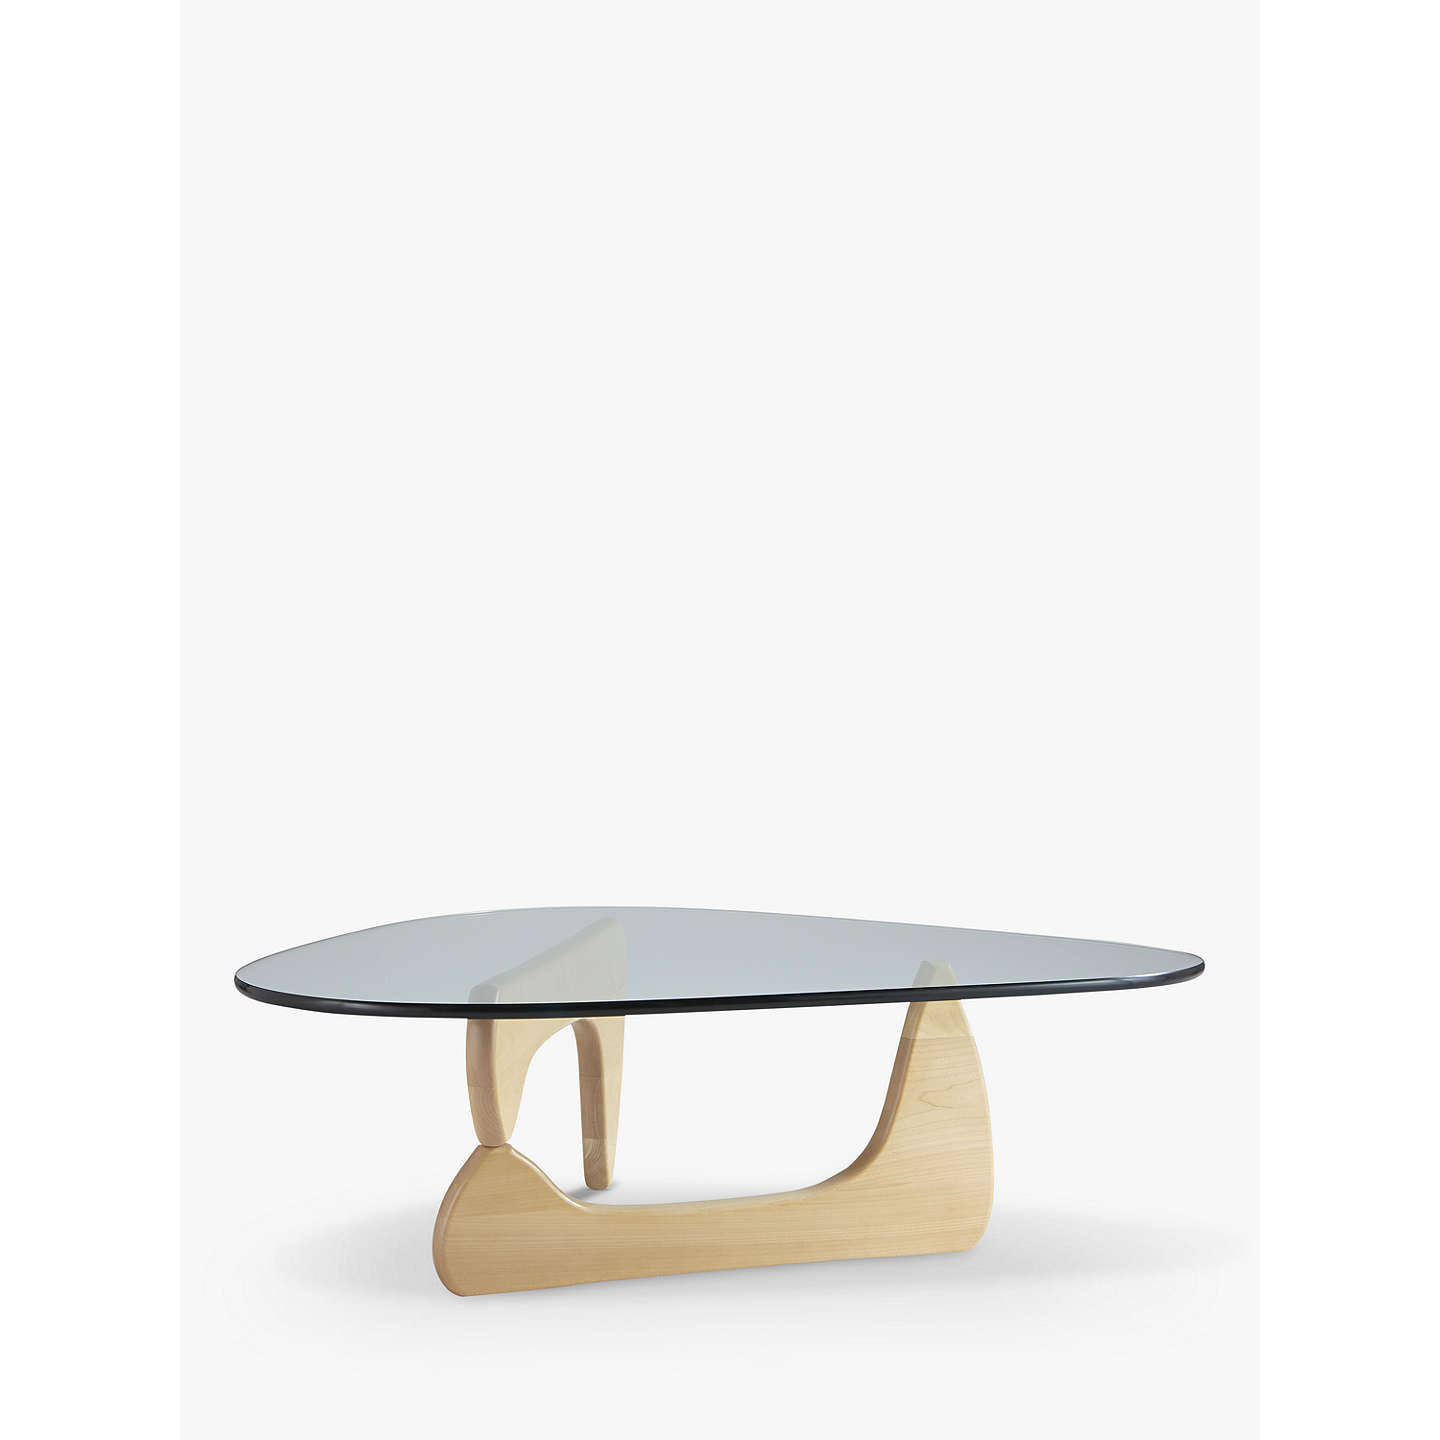 Vitra Noguchi Coffee Table Maple Wood At Johnlewis Com